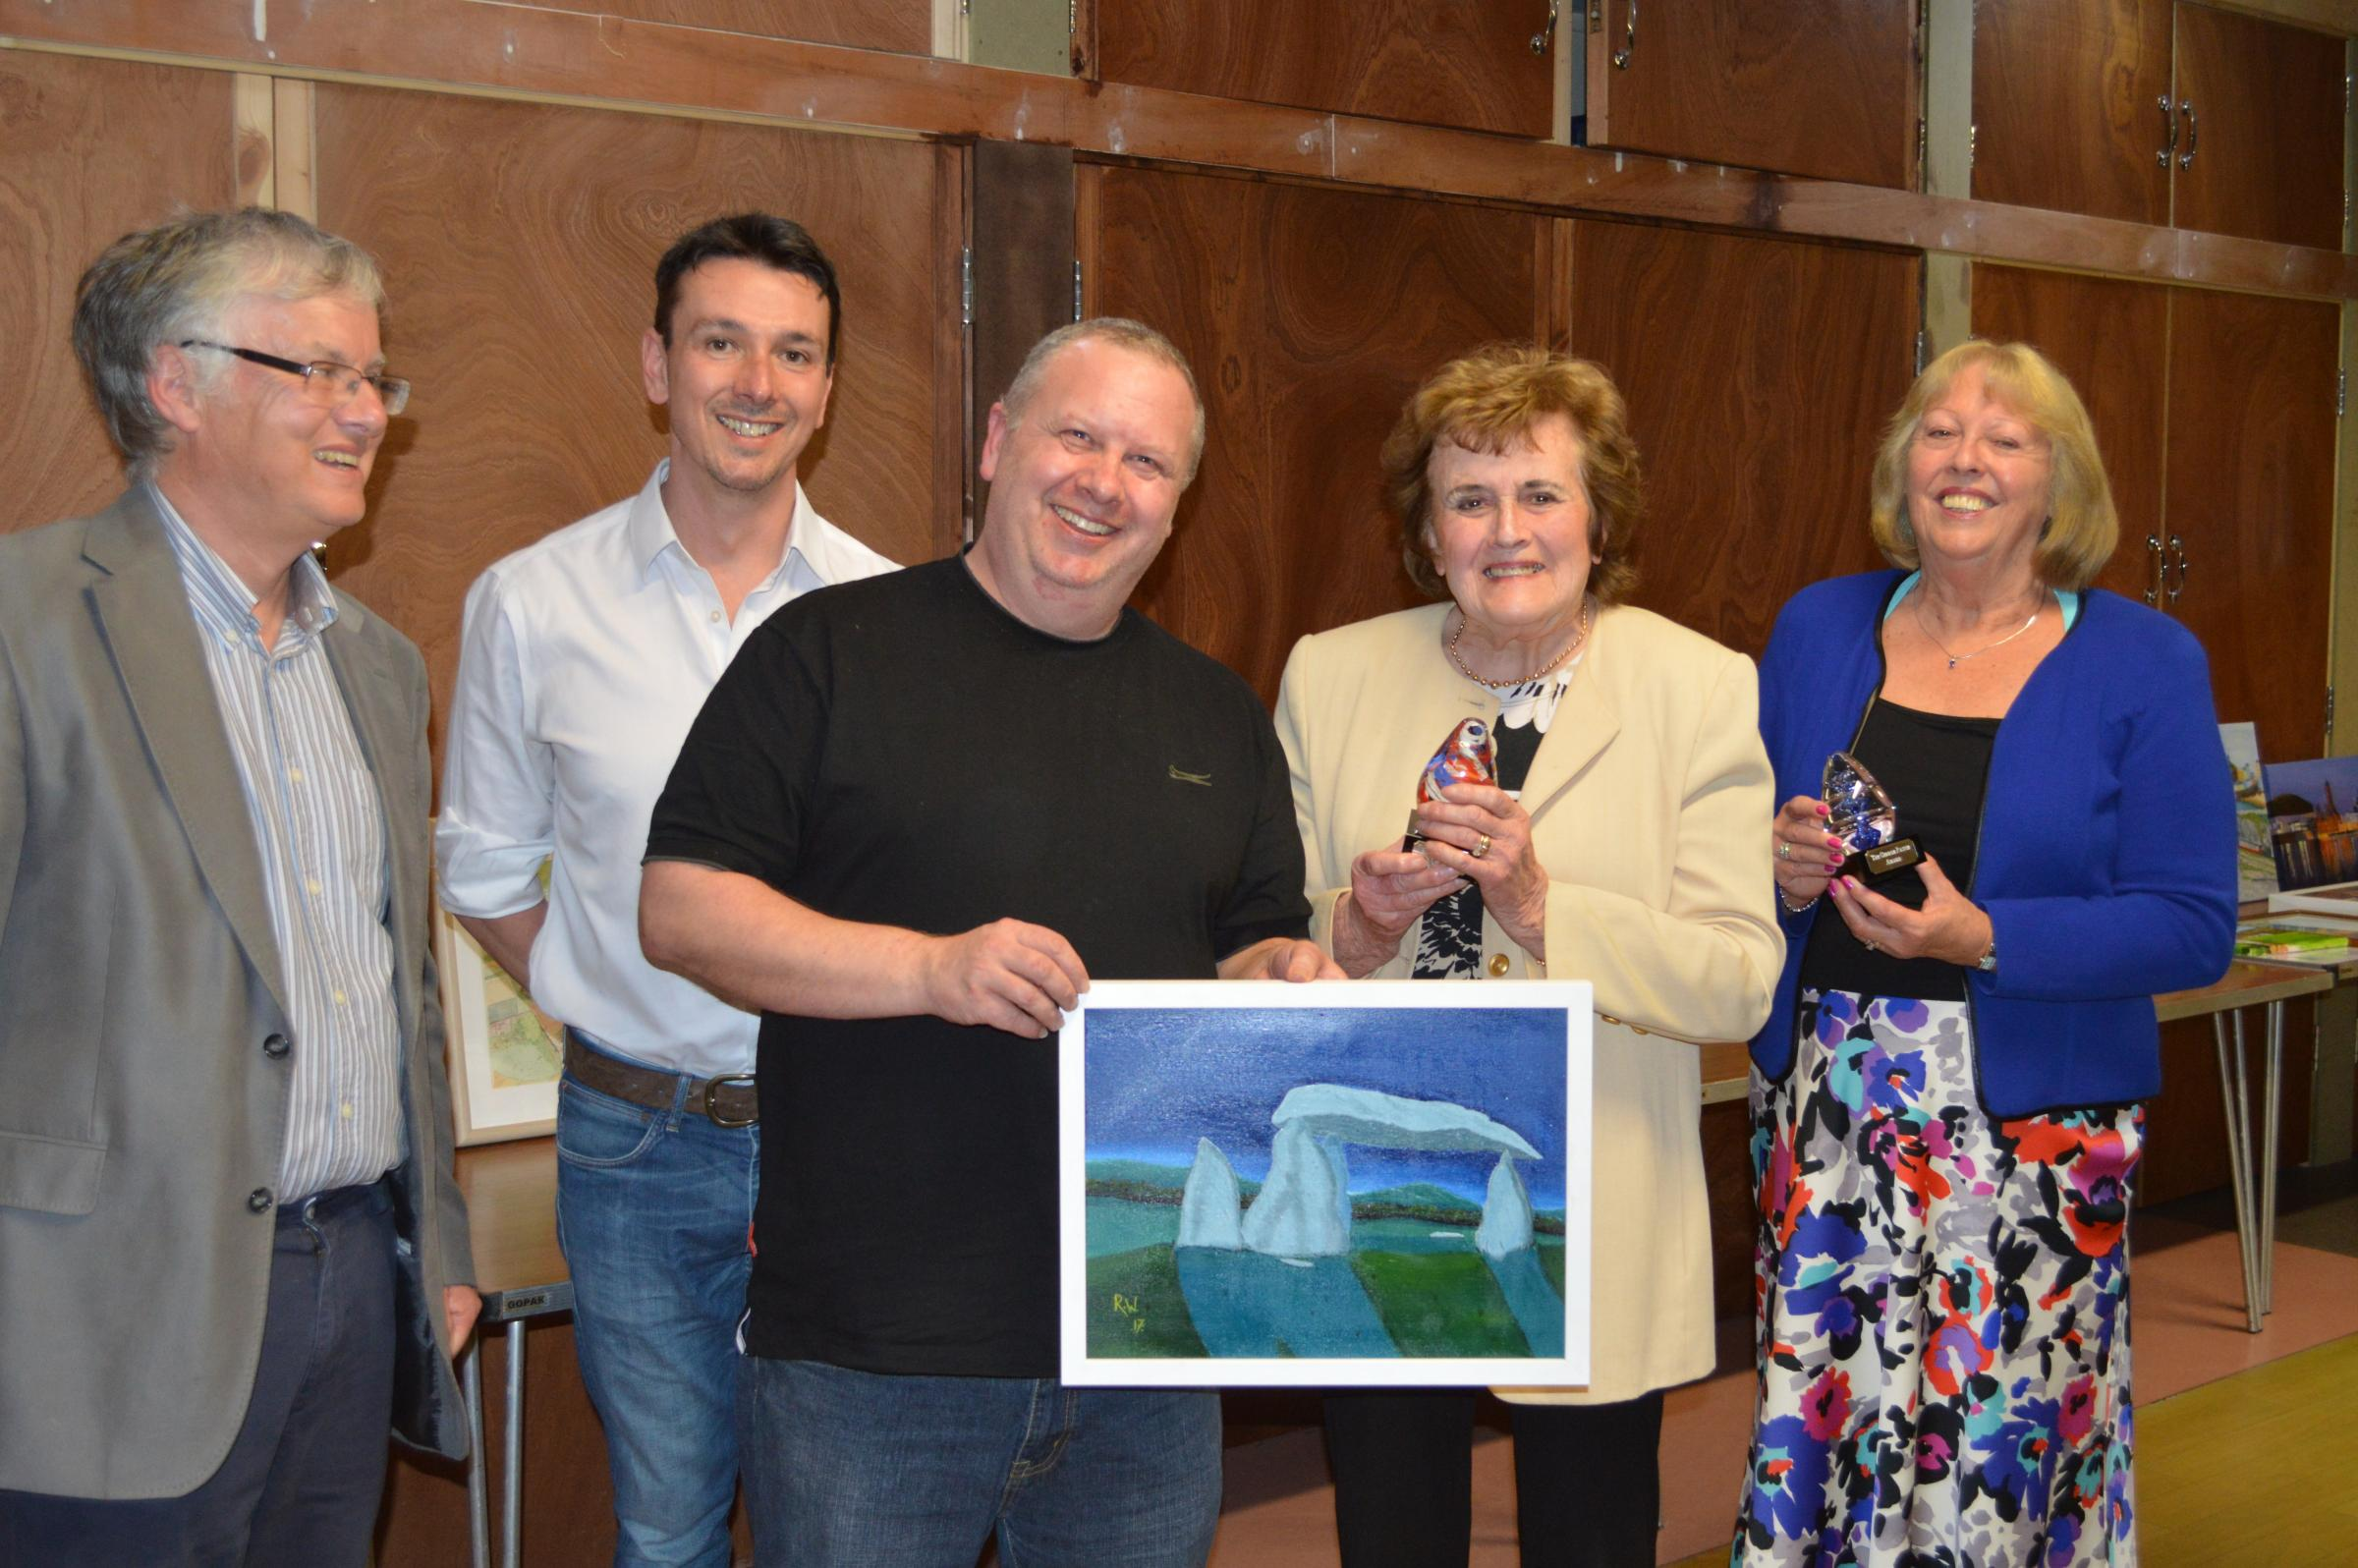 (From left) Nigel Adams chairman, Vaughan Cummings, Robert Williams holding the winning painting, Brenda Young and George Payne's daughter